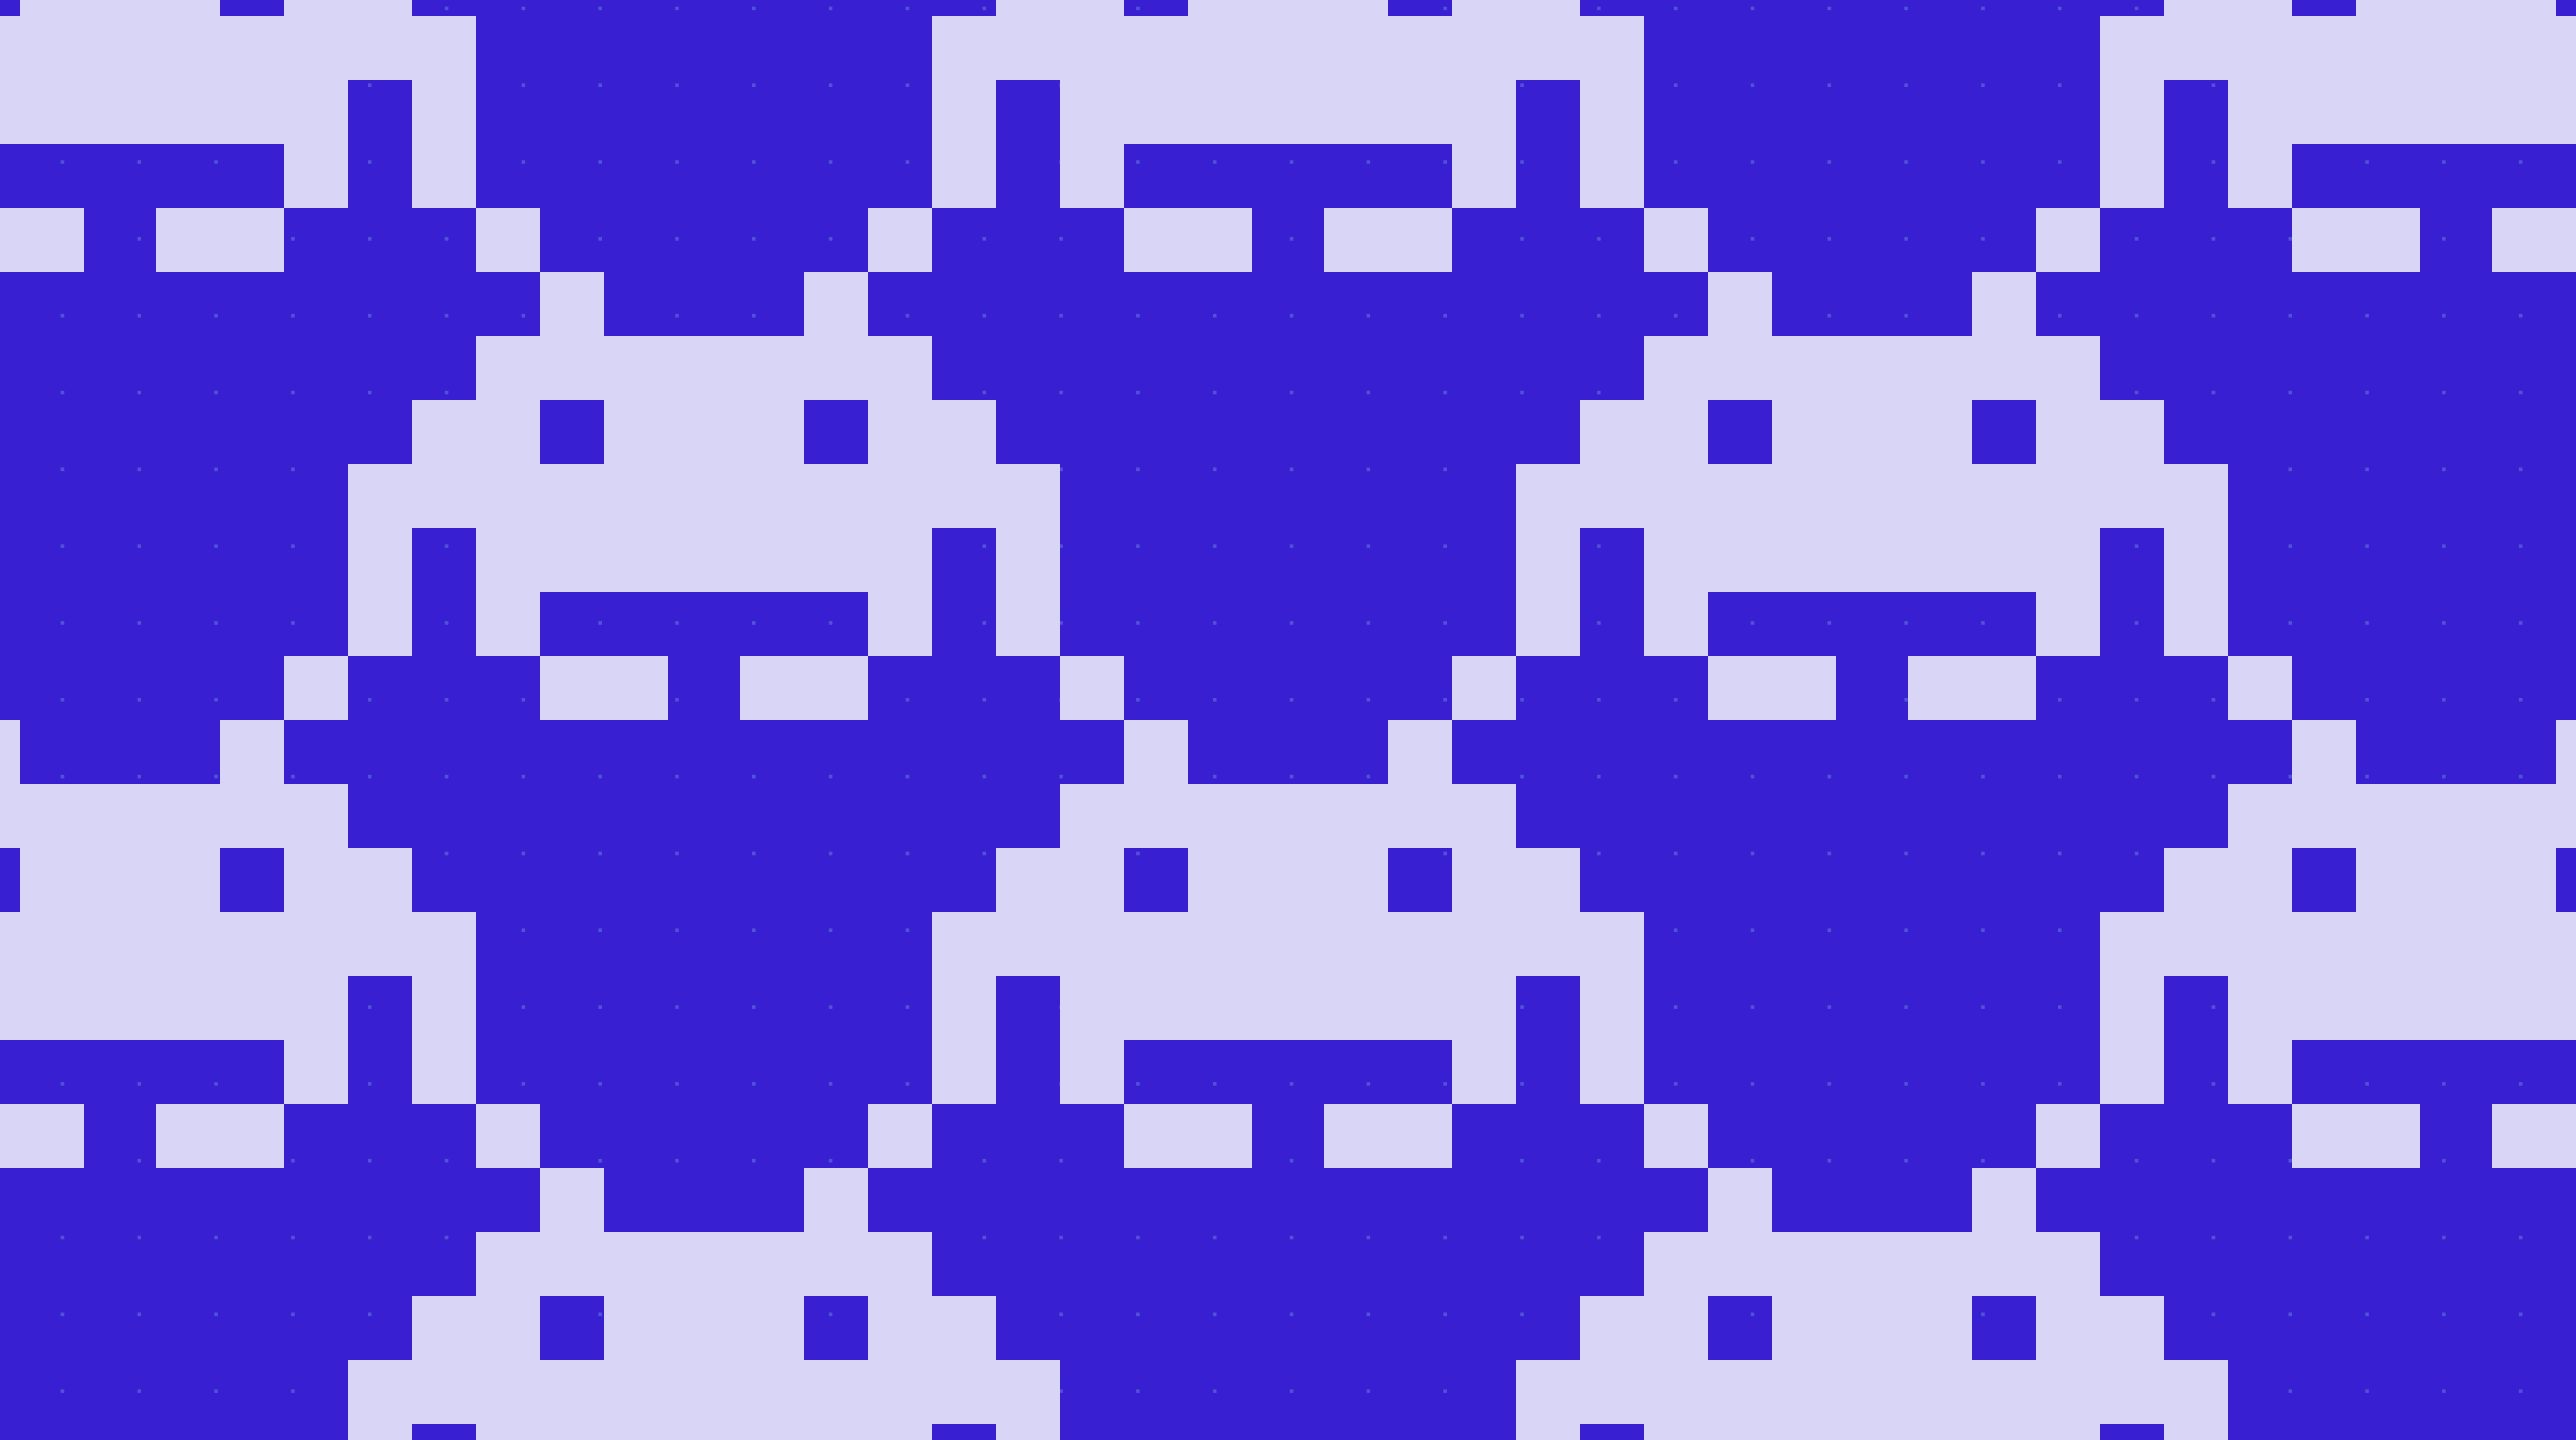 Space Invaders alien in a grid pattern with Stark purple colors